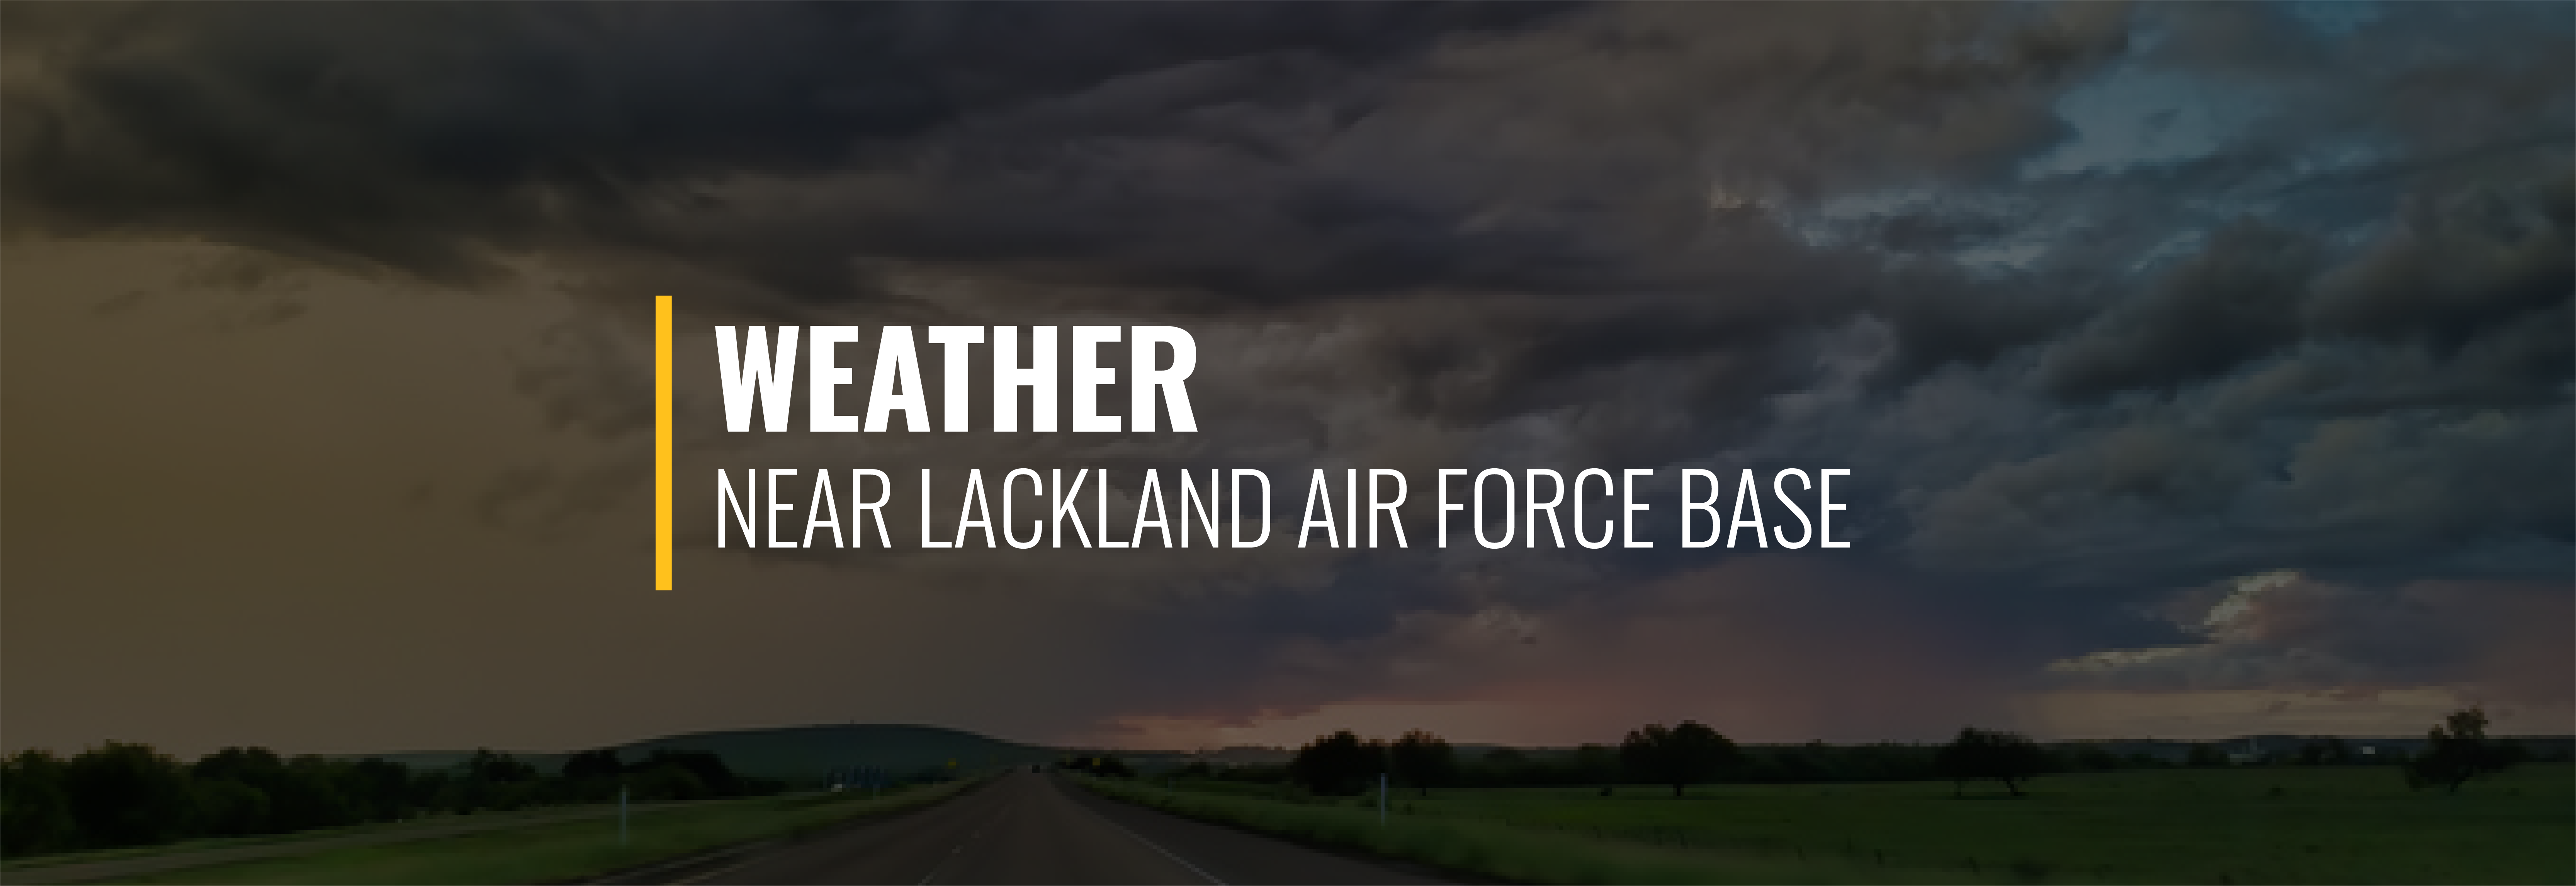 Lackland Air Force Base Weather